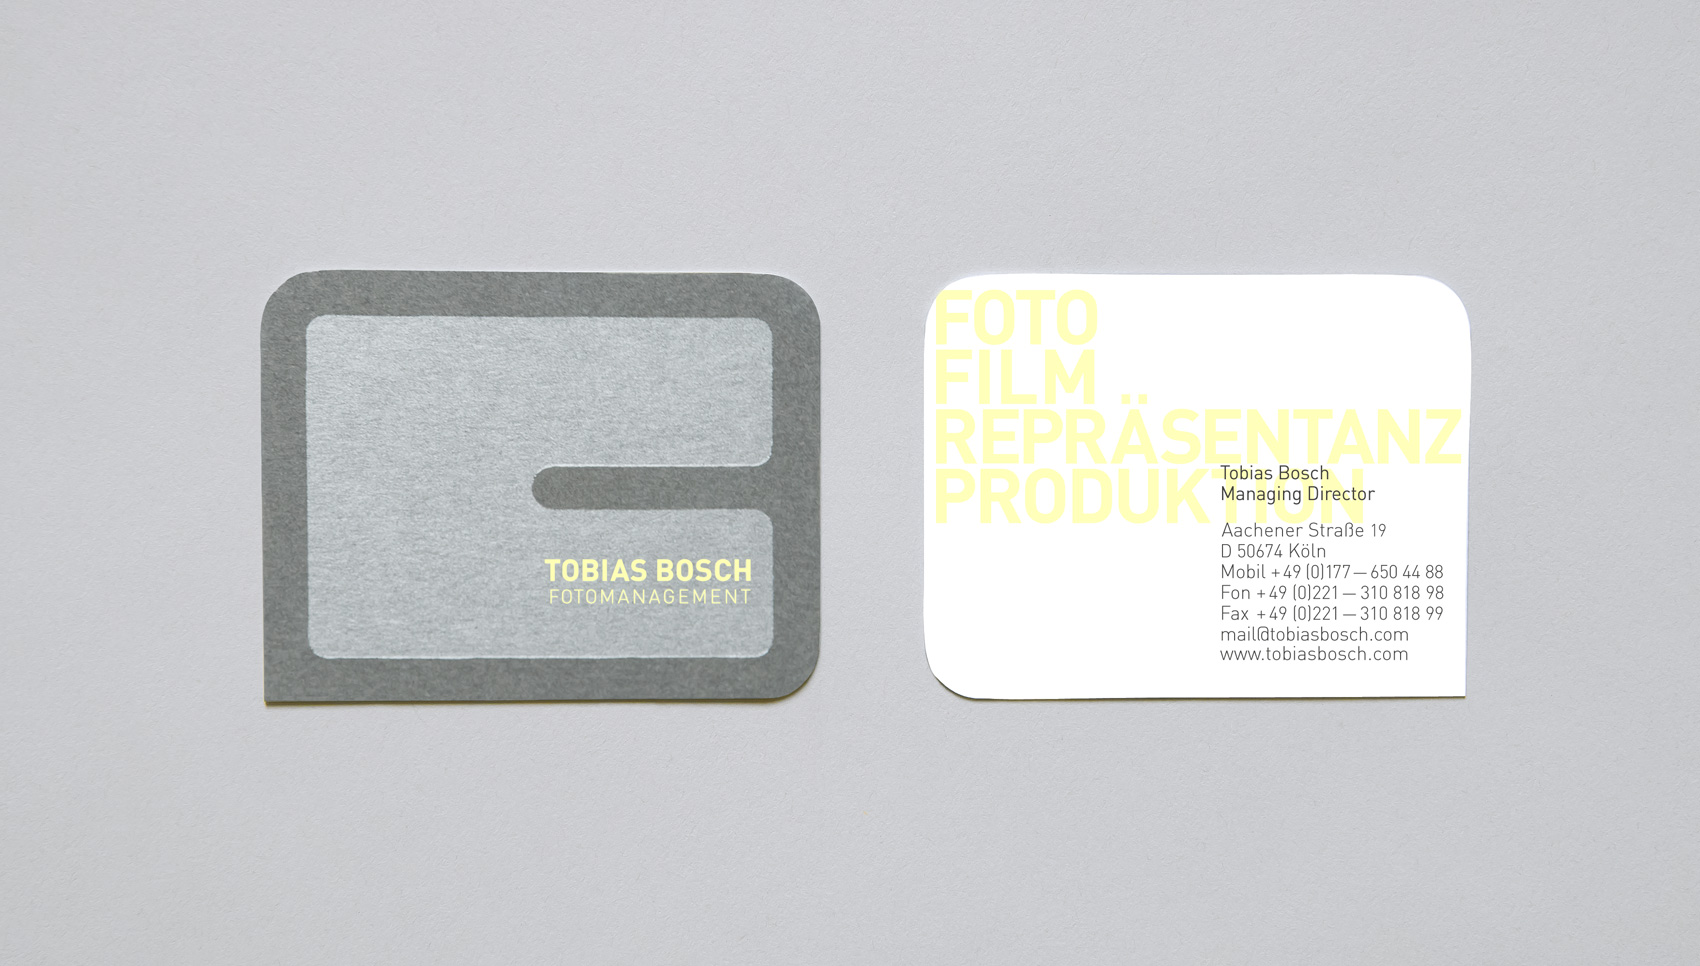 Tobias Bosch. Corporate Design.